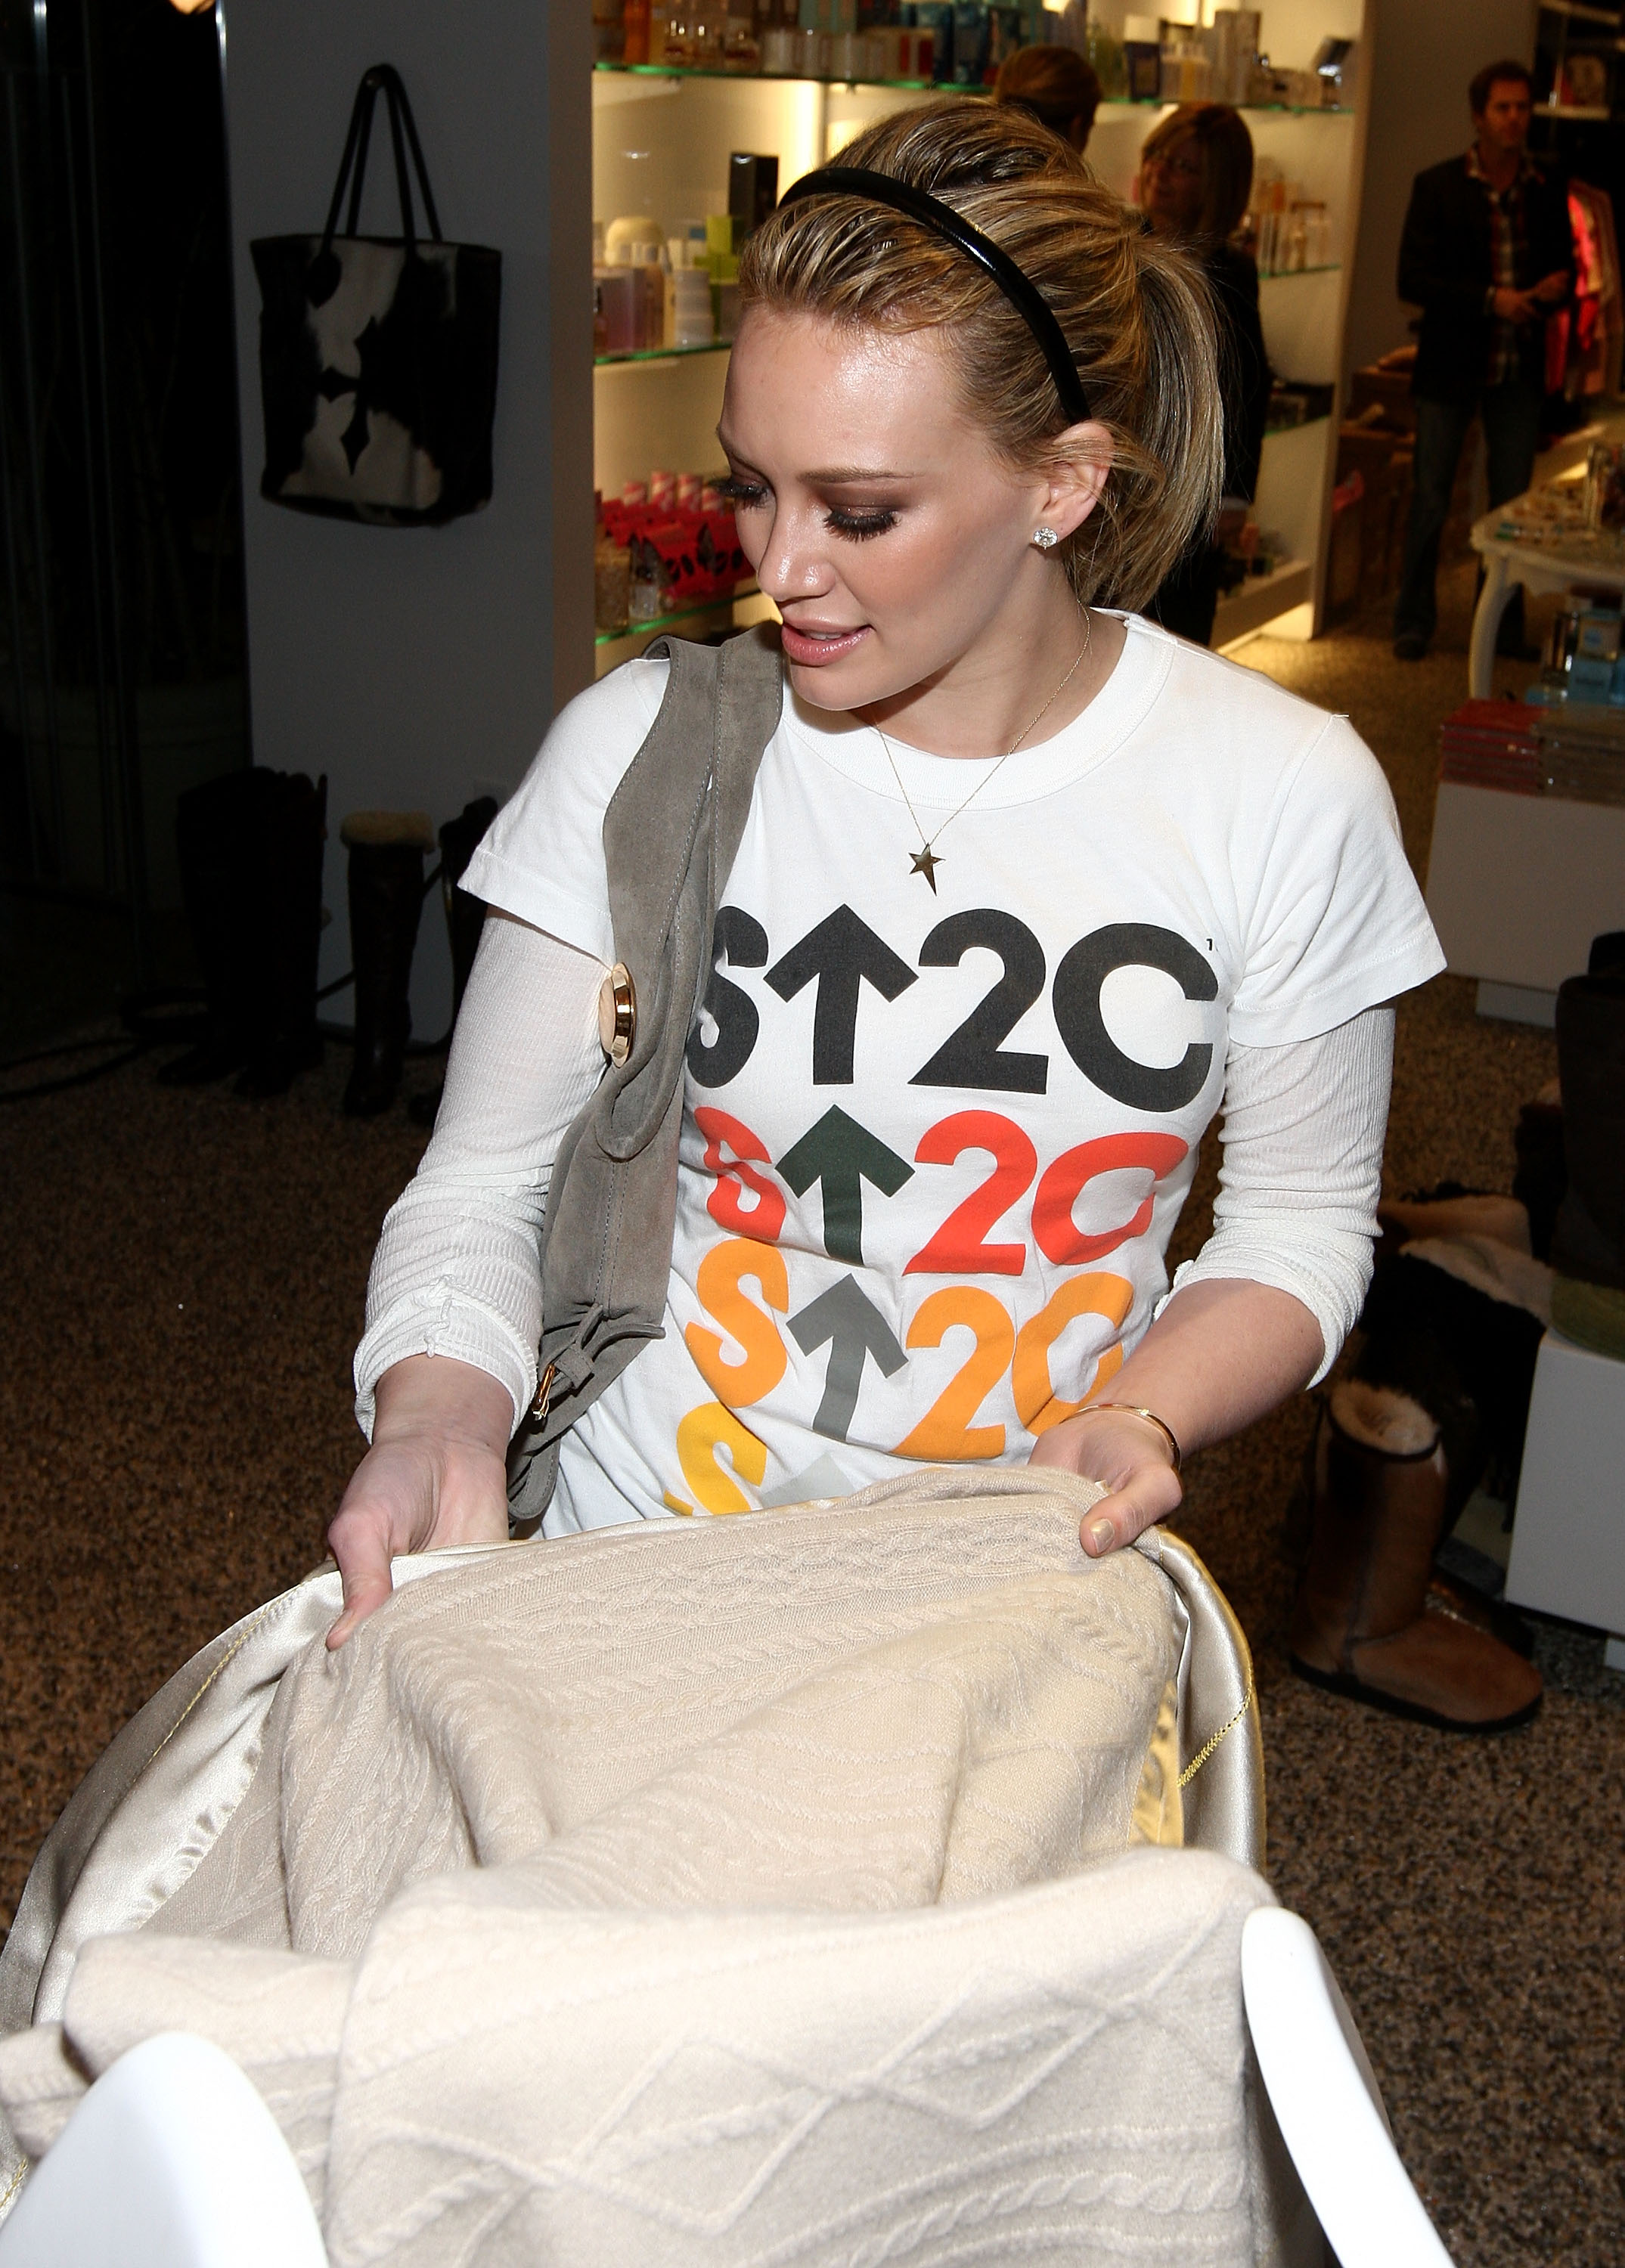 97000_Celebutopia-Mandy_Moore_and_Hilary_Duff-SU2C_merchandise_collection_launch-14_122_1125lo.jpg